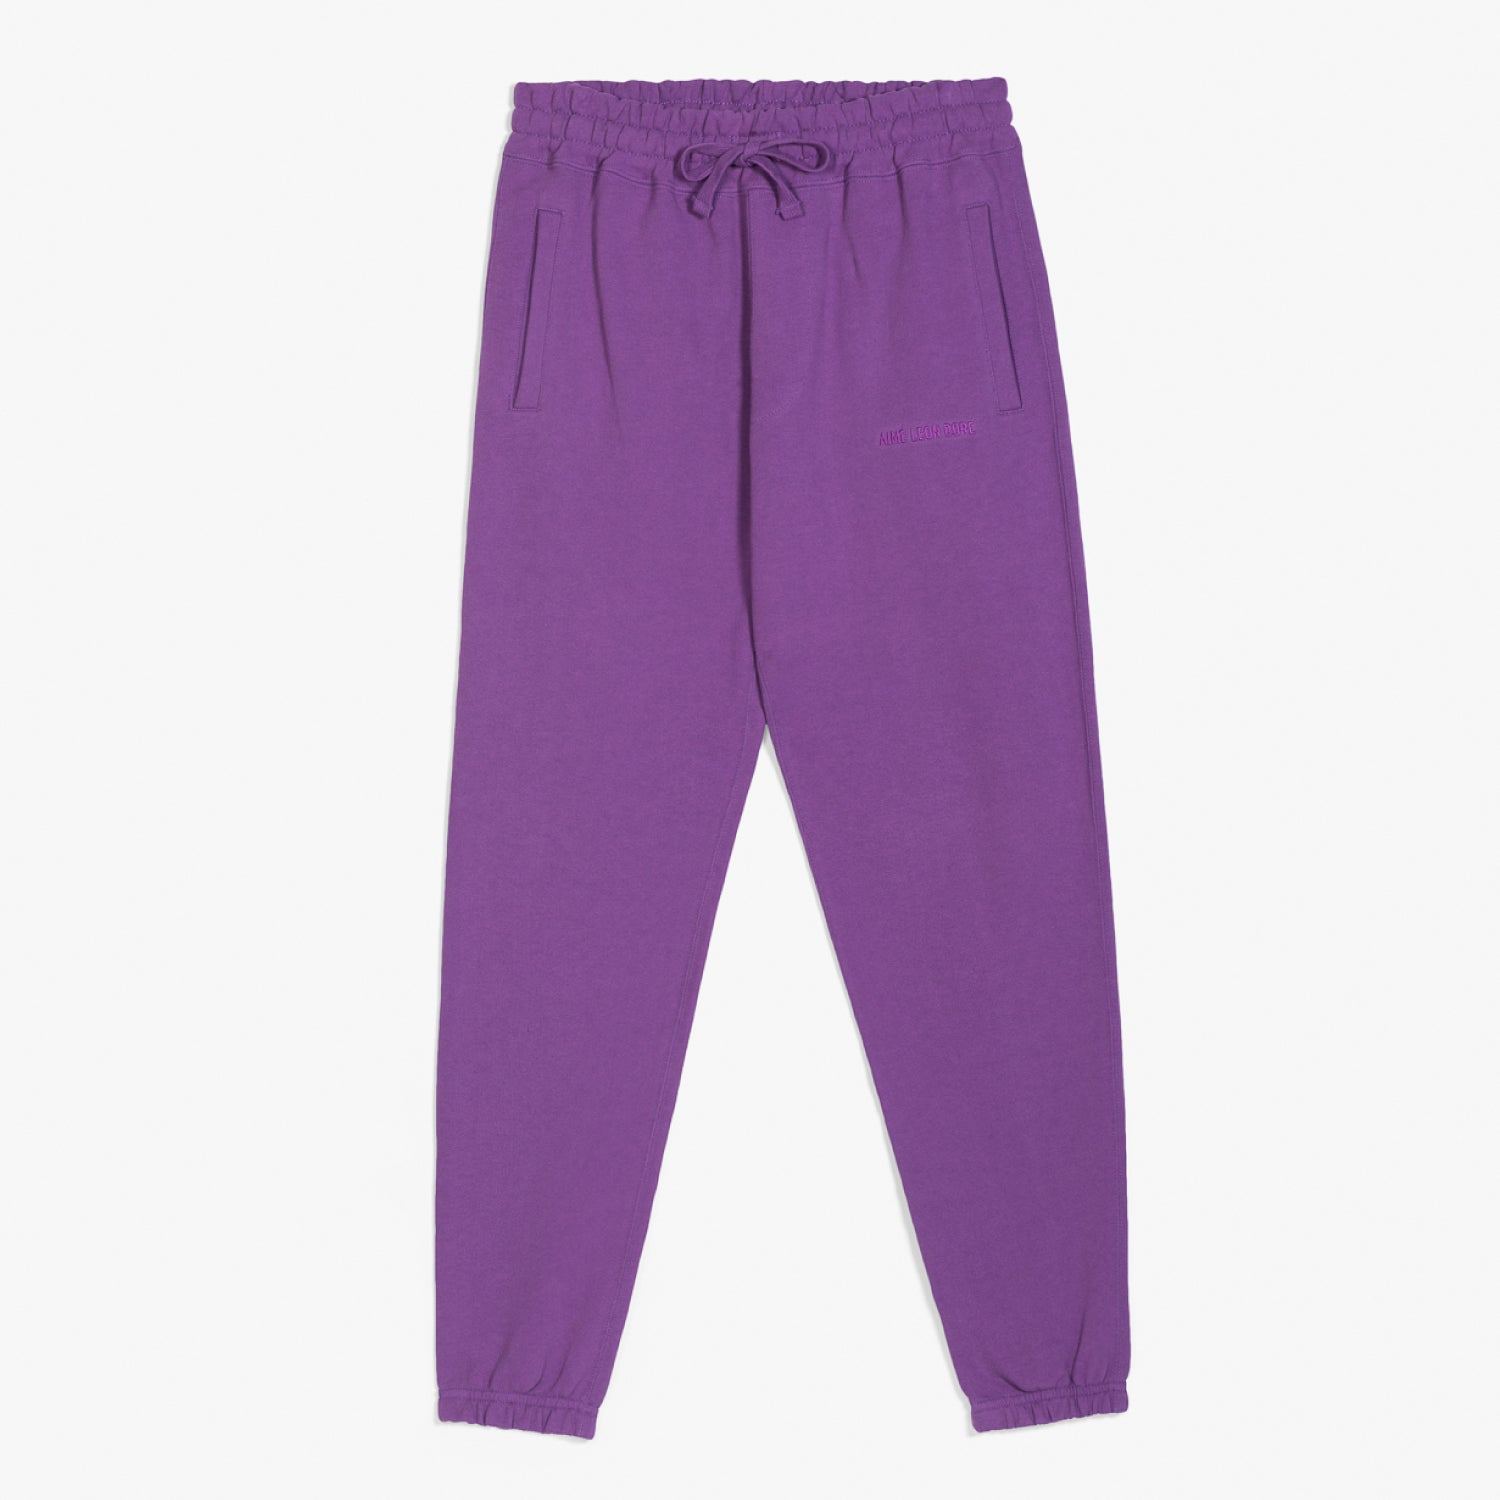 FRENCH TERRY SWEAT PANTS - PURPLE